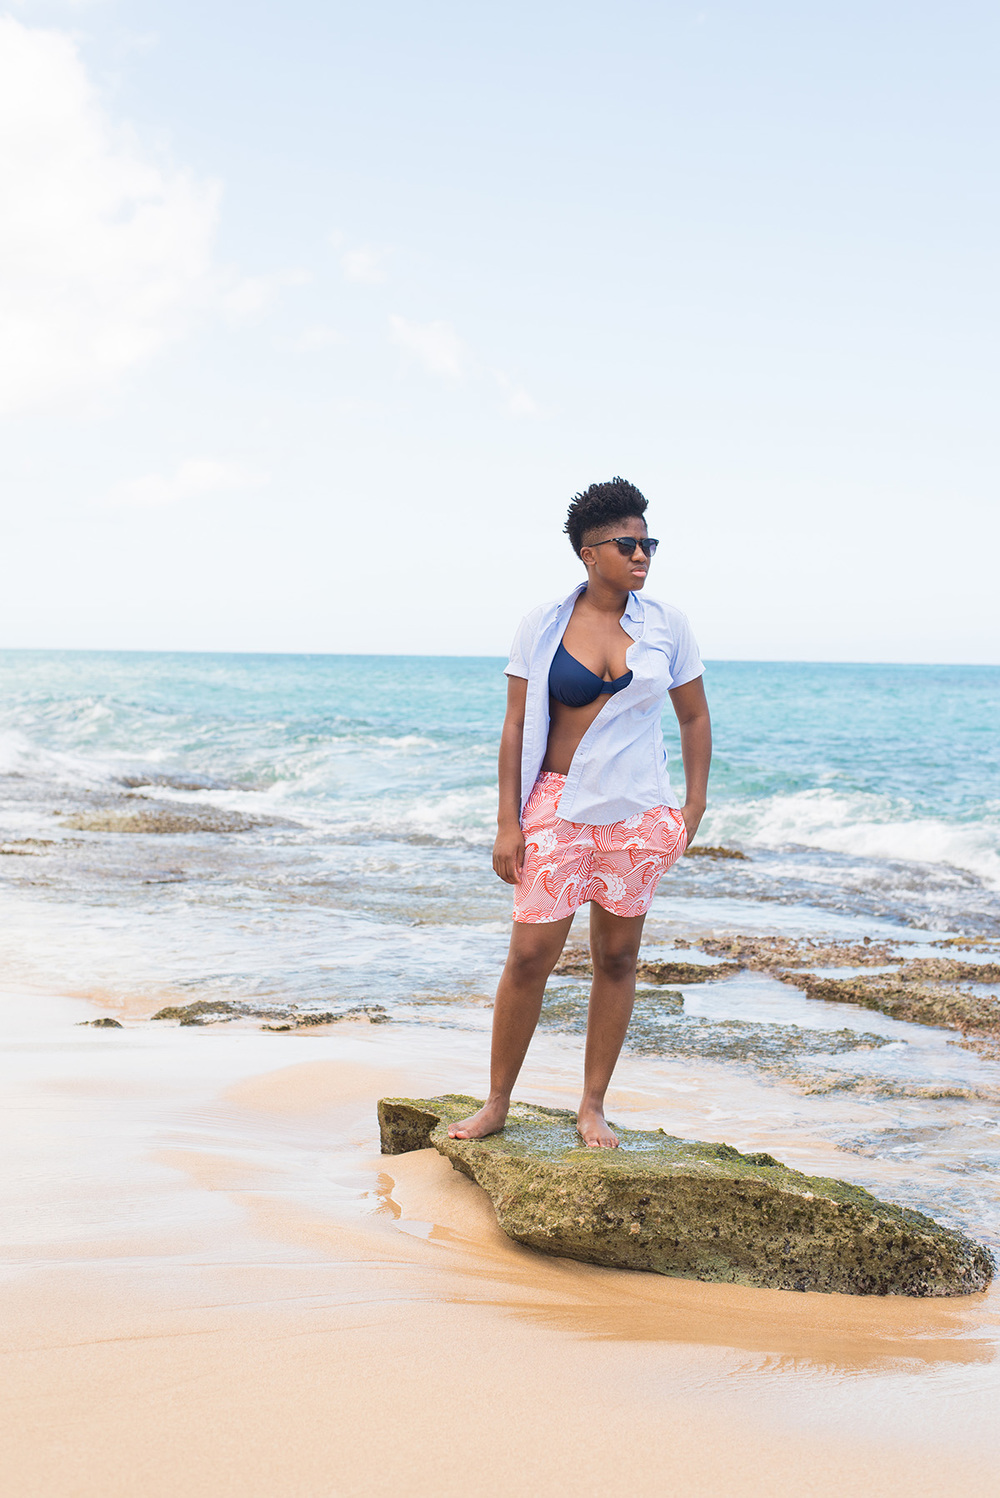 Beach time in my Men's Short Sleeve Oxford Shirt- Uniqlo